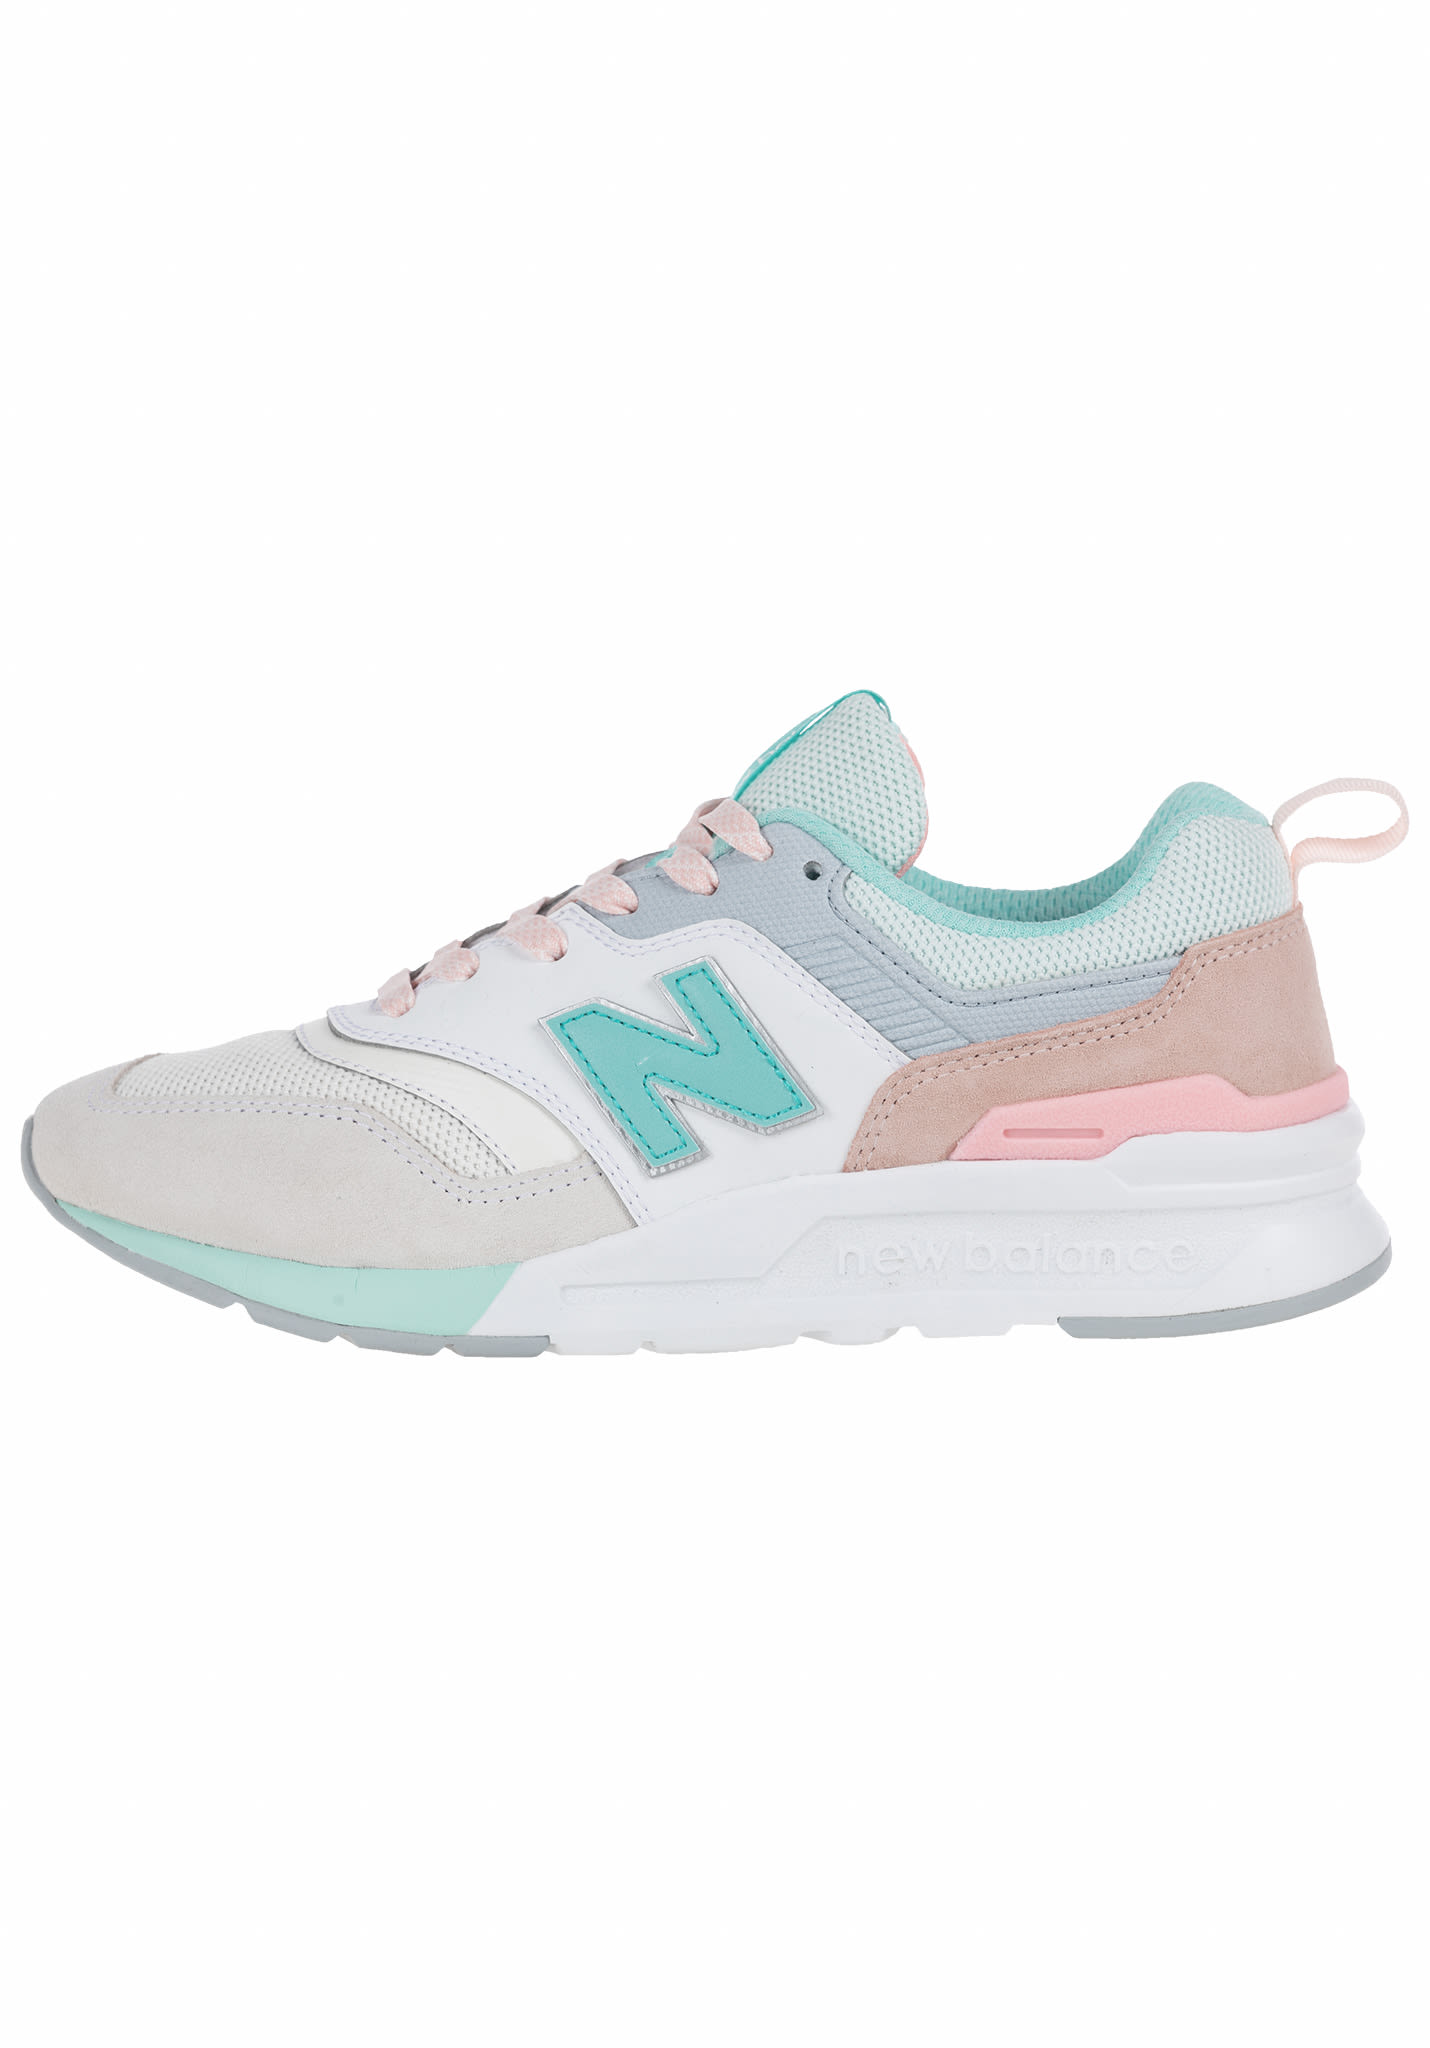 Balance White Cw997 New Sneakers Women For B KJ3cTlF1